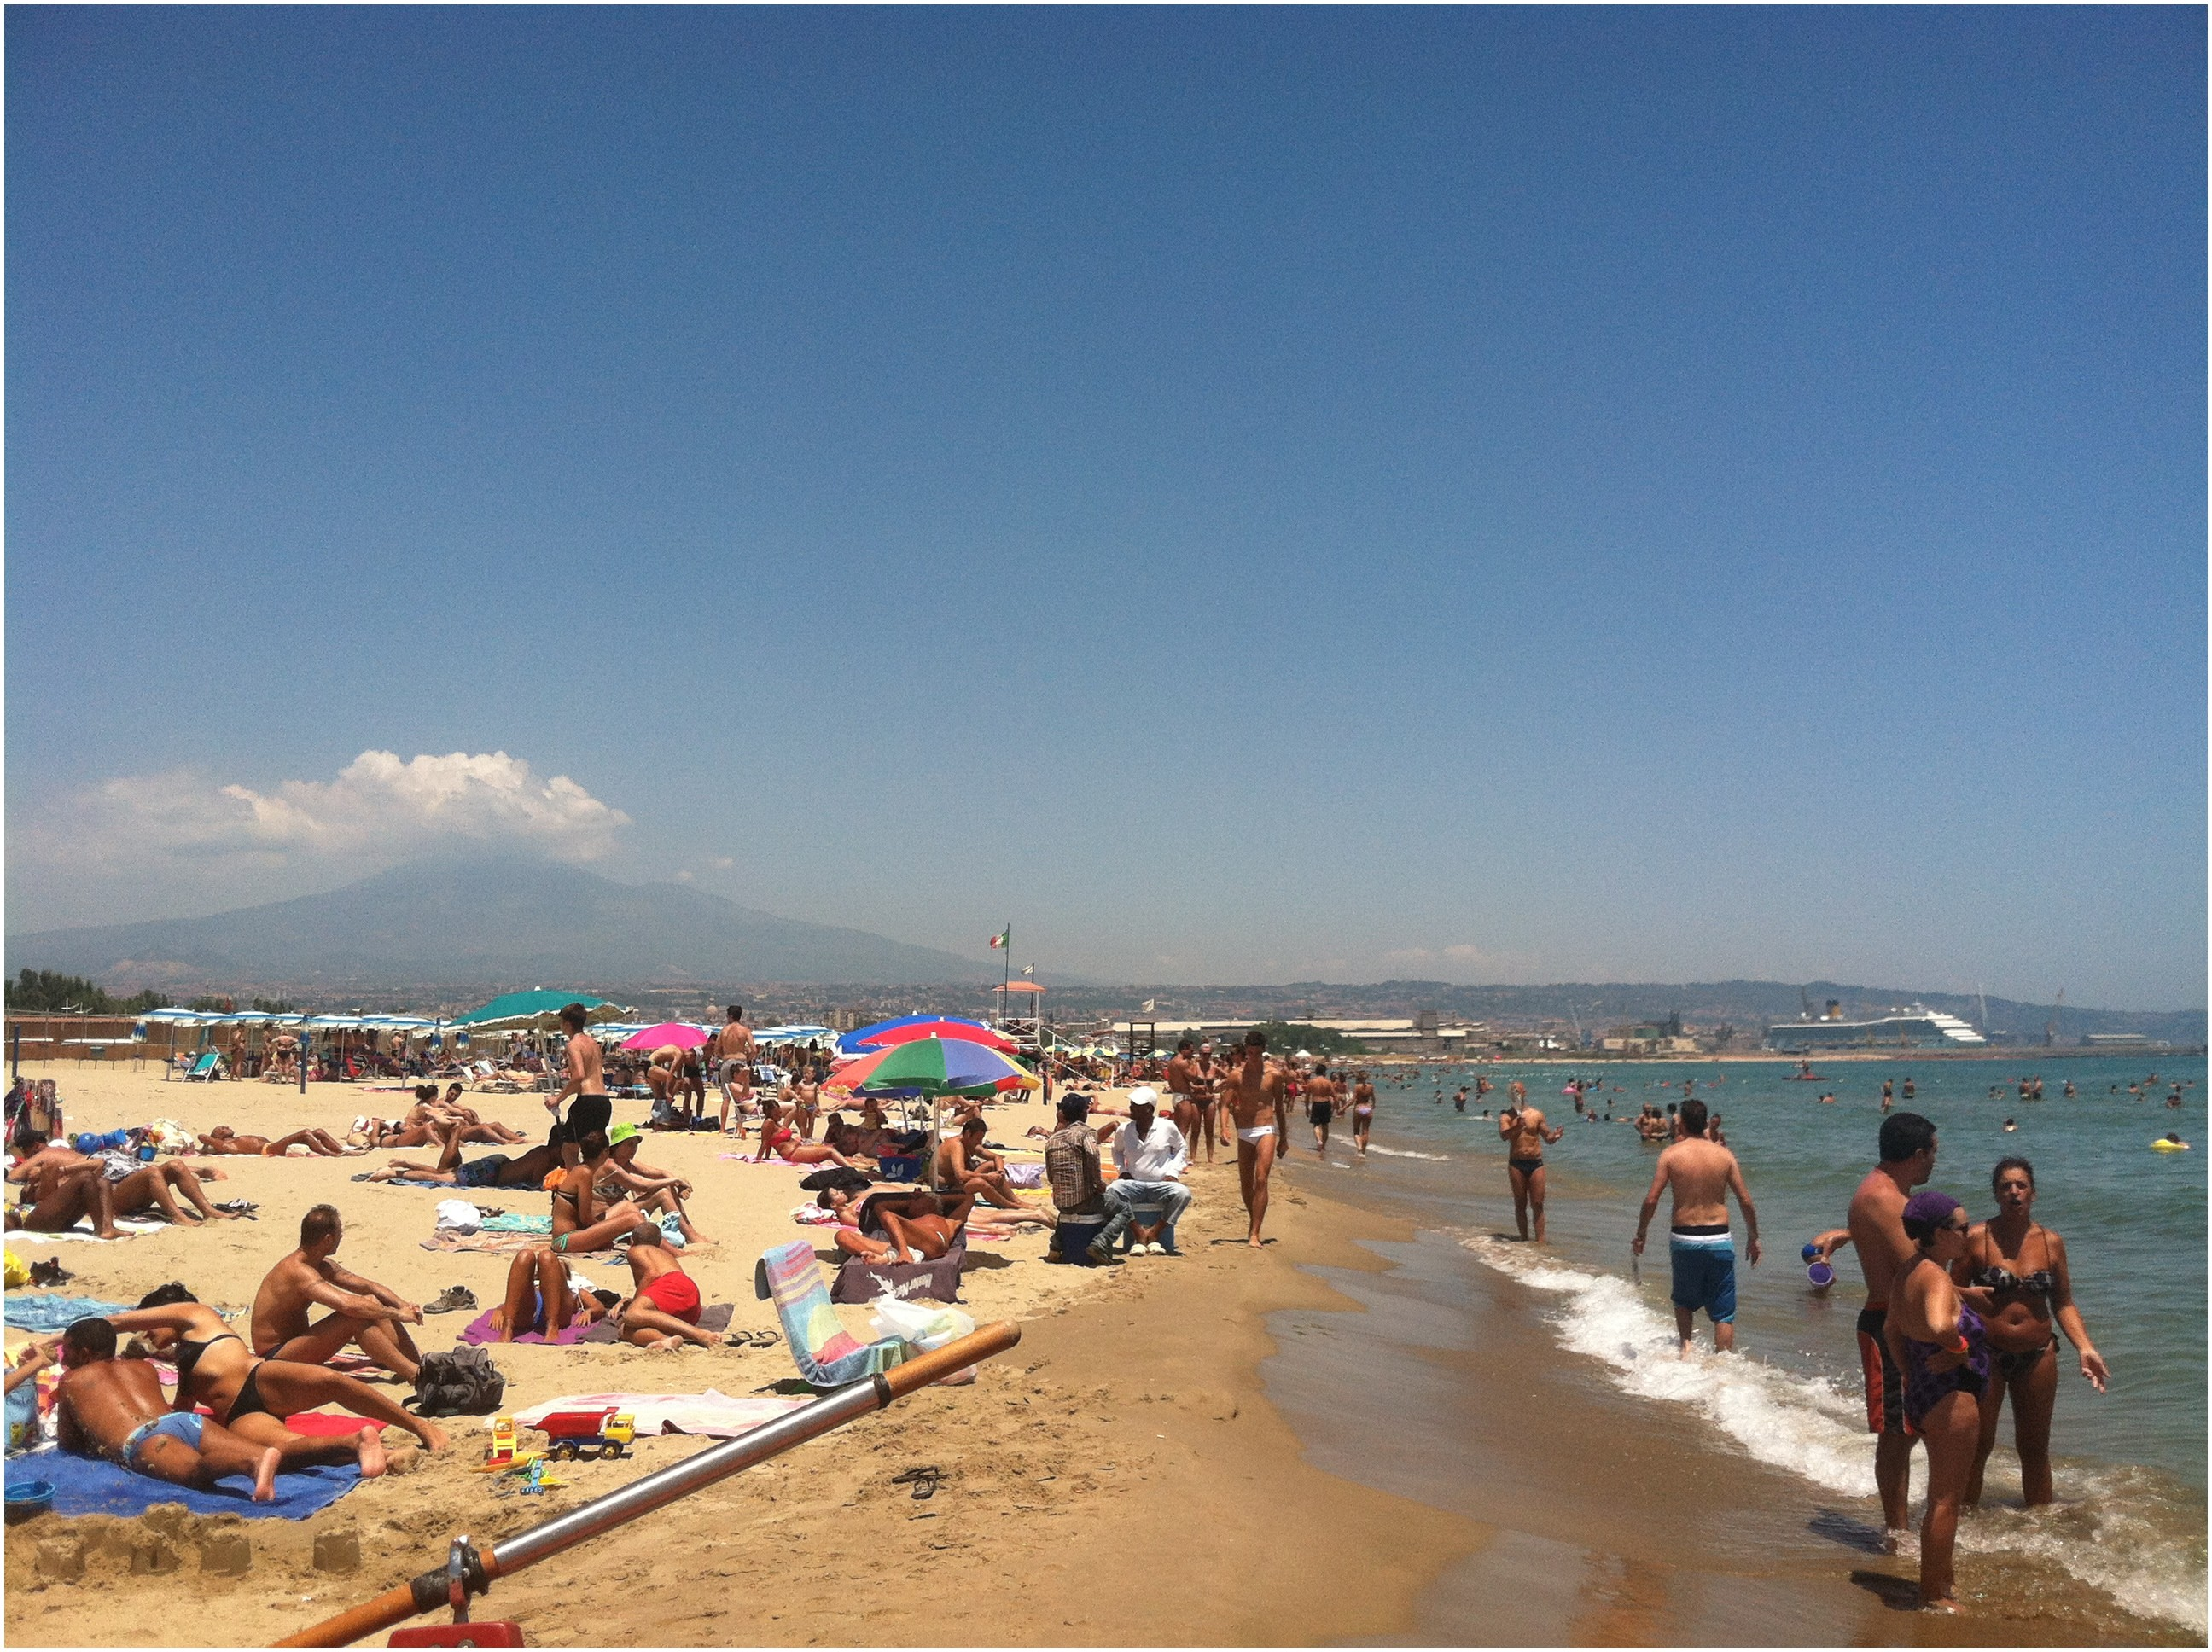 Mount Etna viewed from Catania s beach